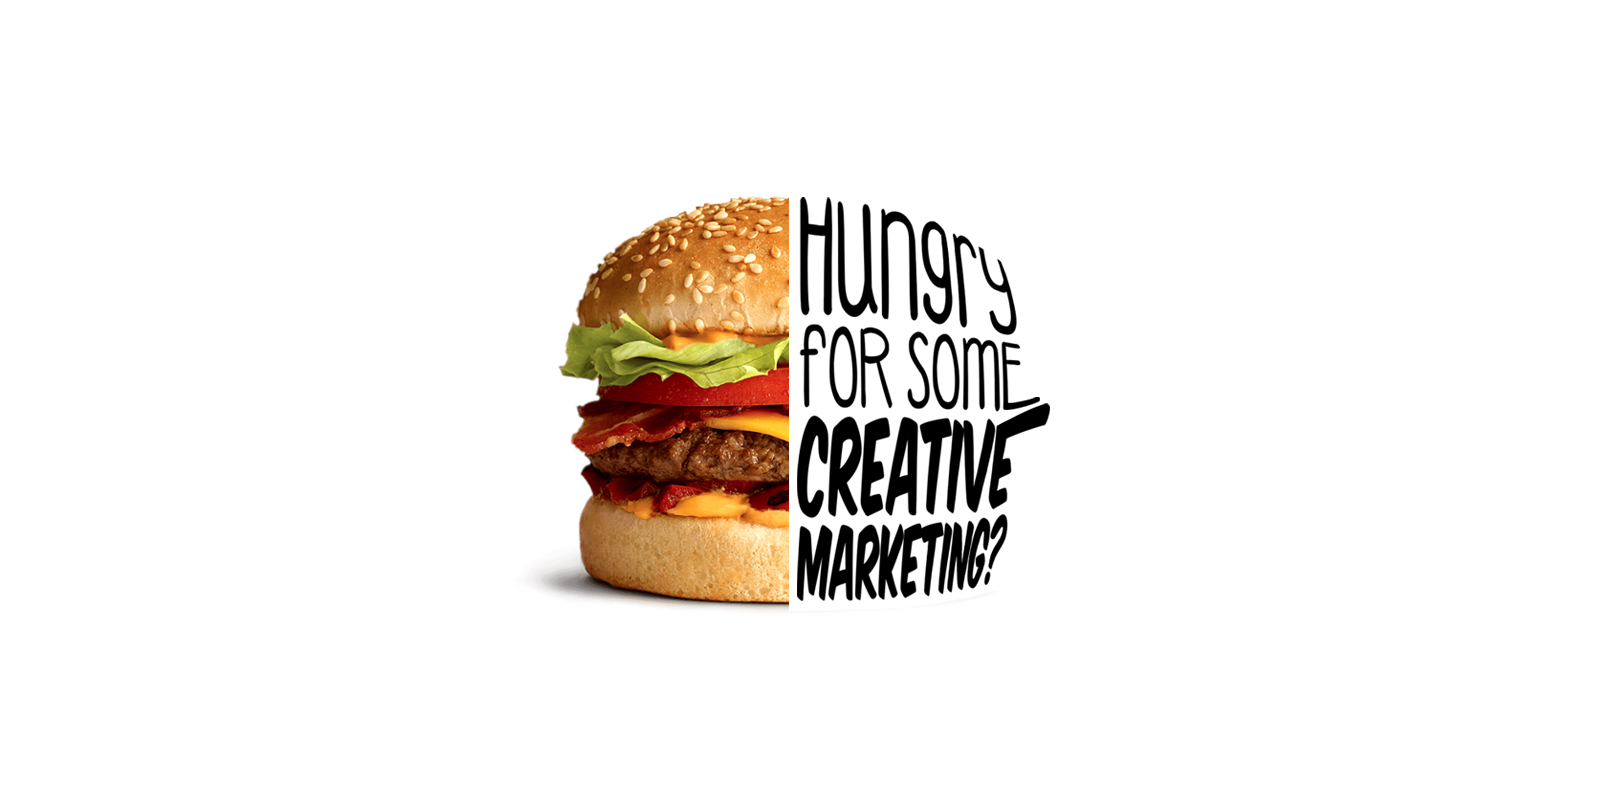 Hungry for some creative marketing?